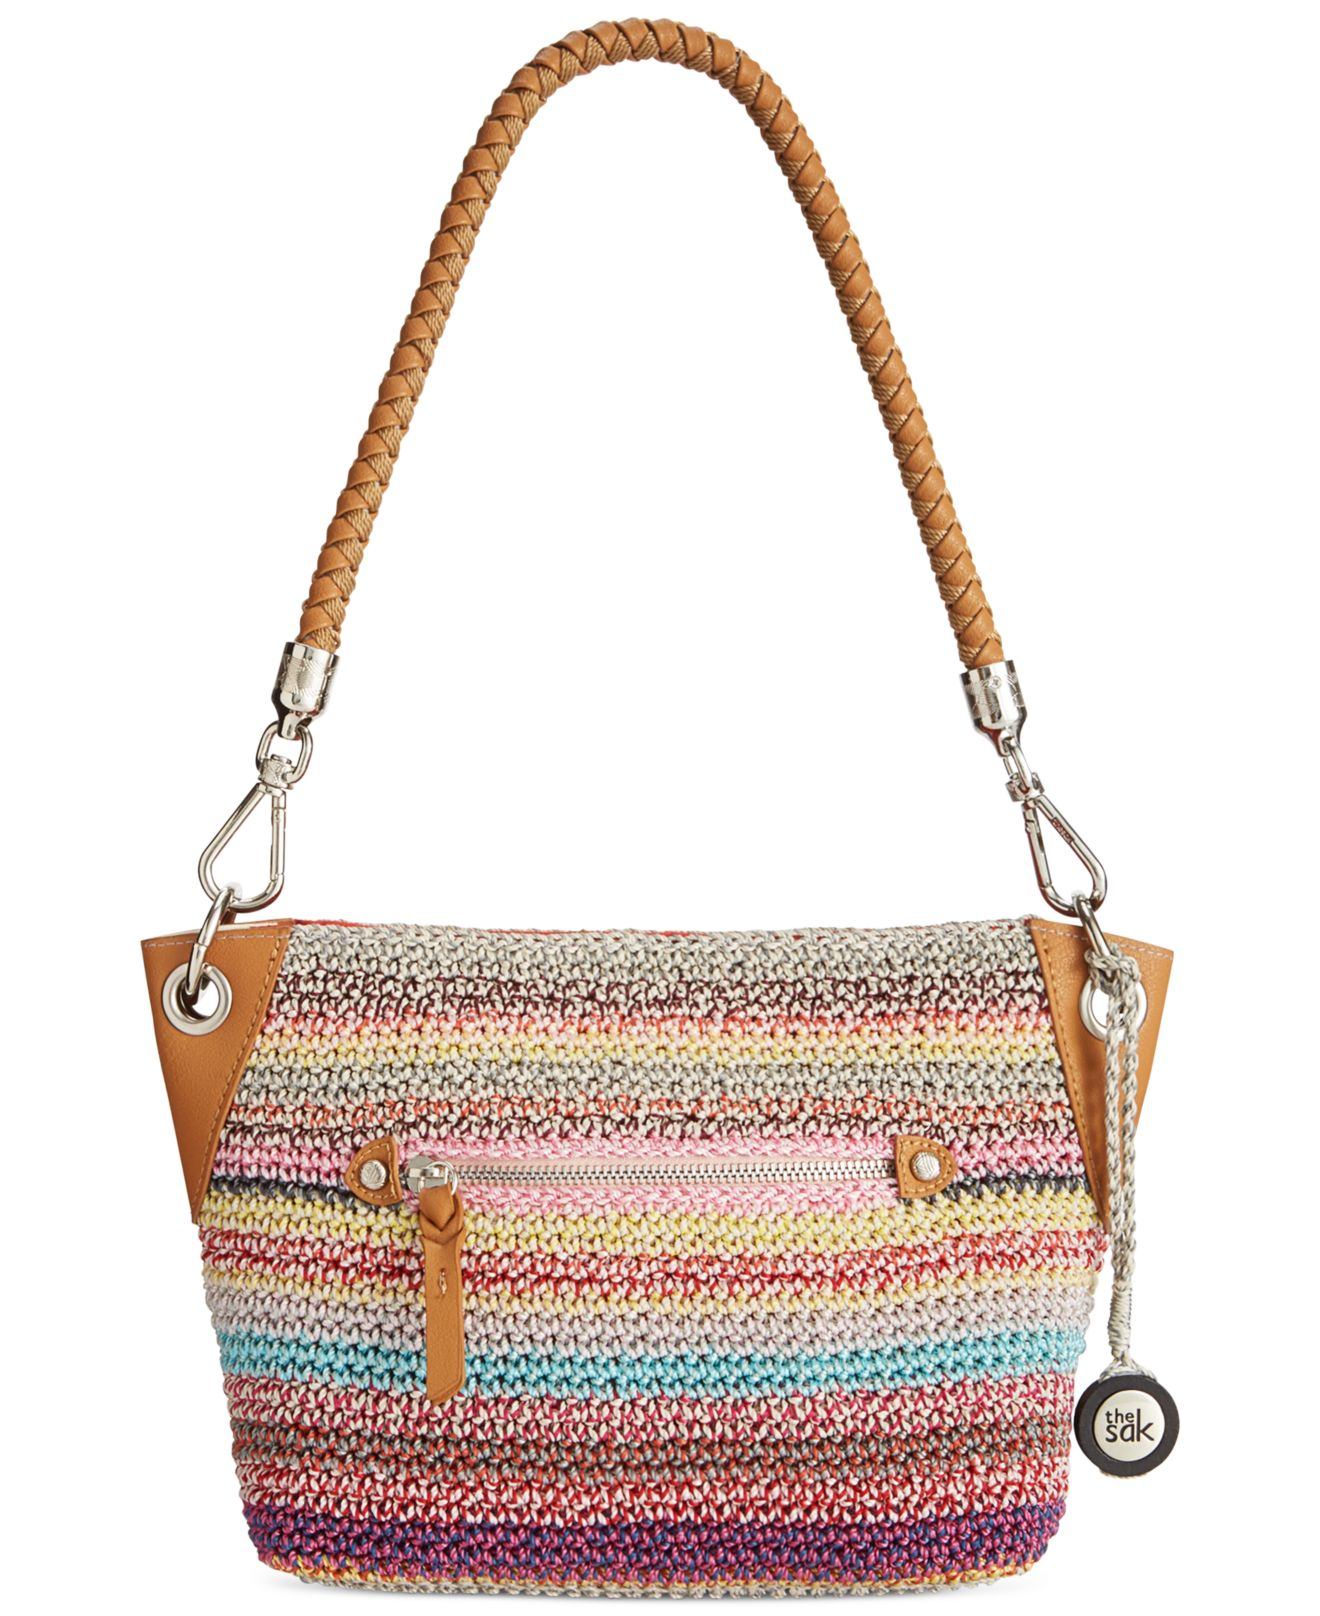 The Sak Bags Crochet : The Sak Portola Crochet Demi Bag in Multicolor (Festi stripe) Lyst